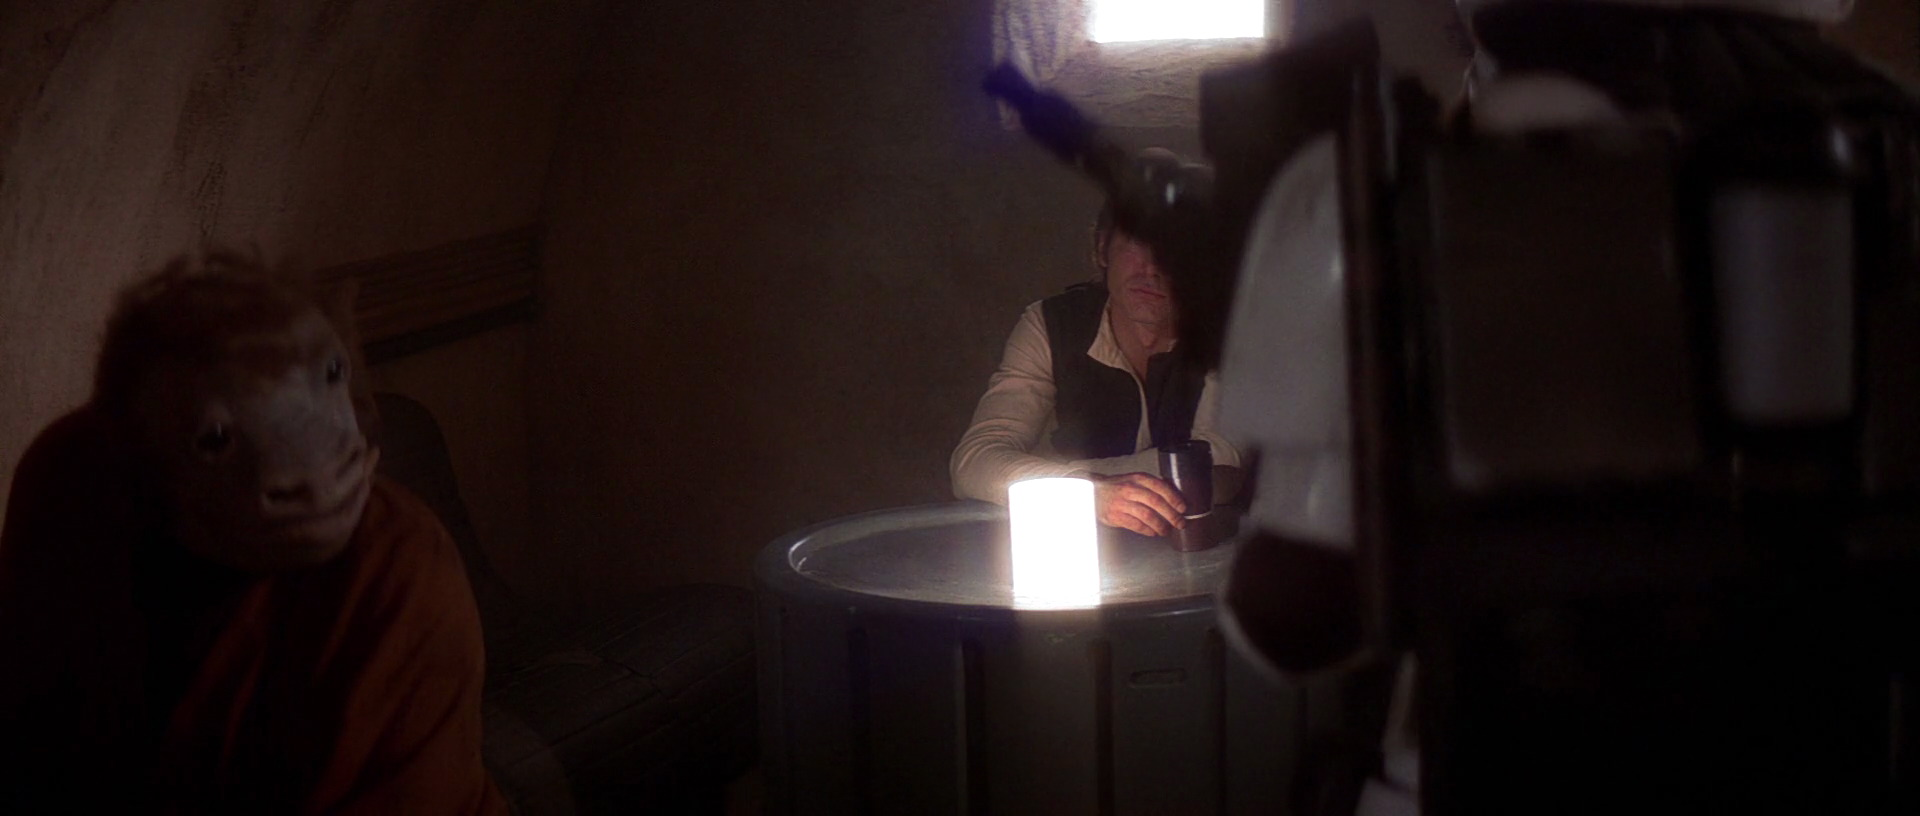 star-wars4-movie-screencaps.com-5711.jpg